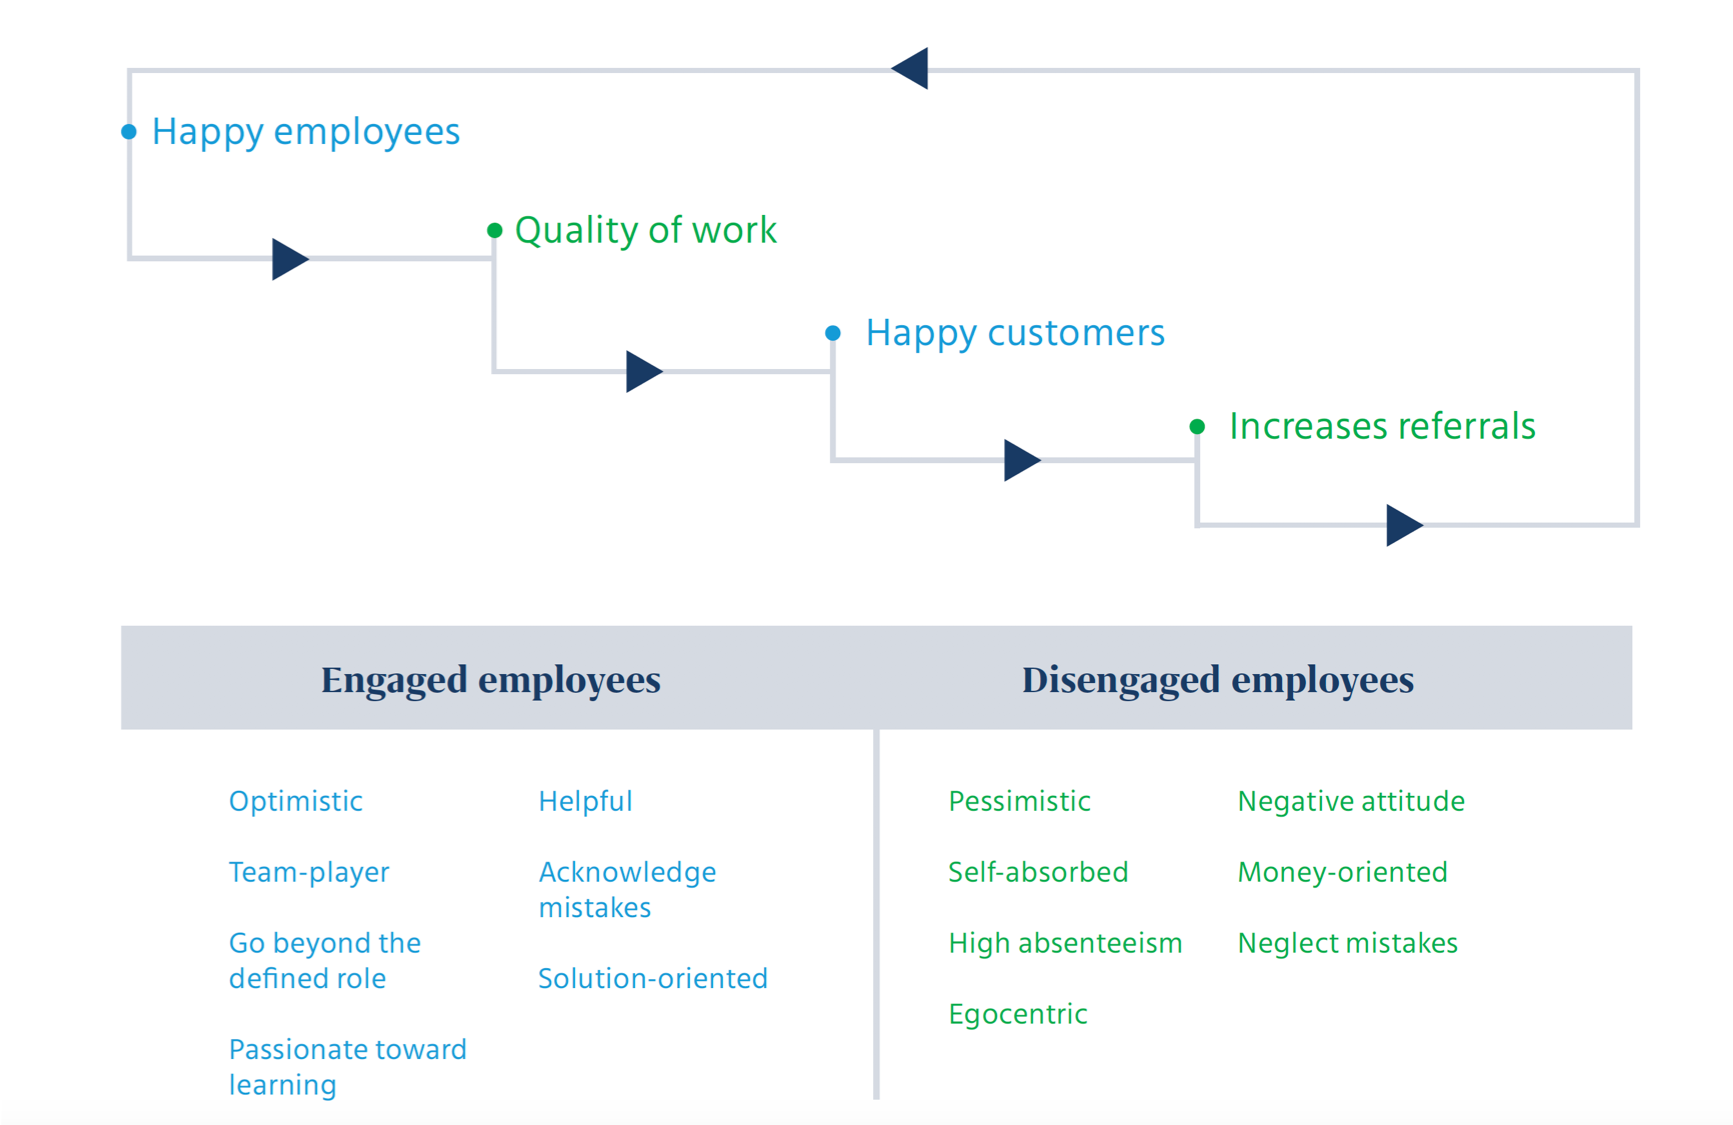 The role of technology in employee engagement